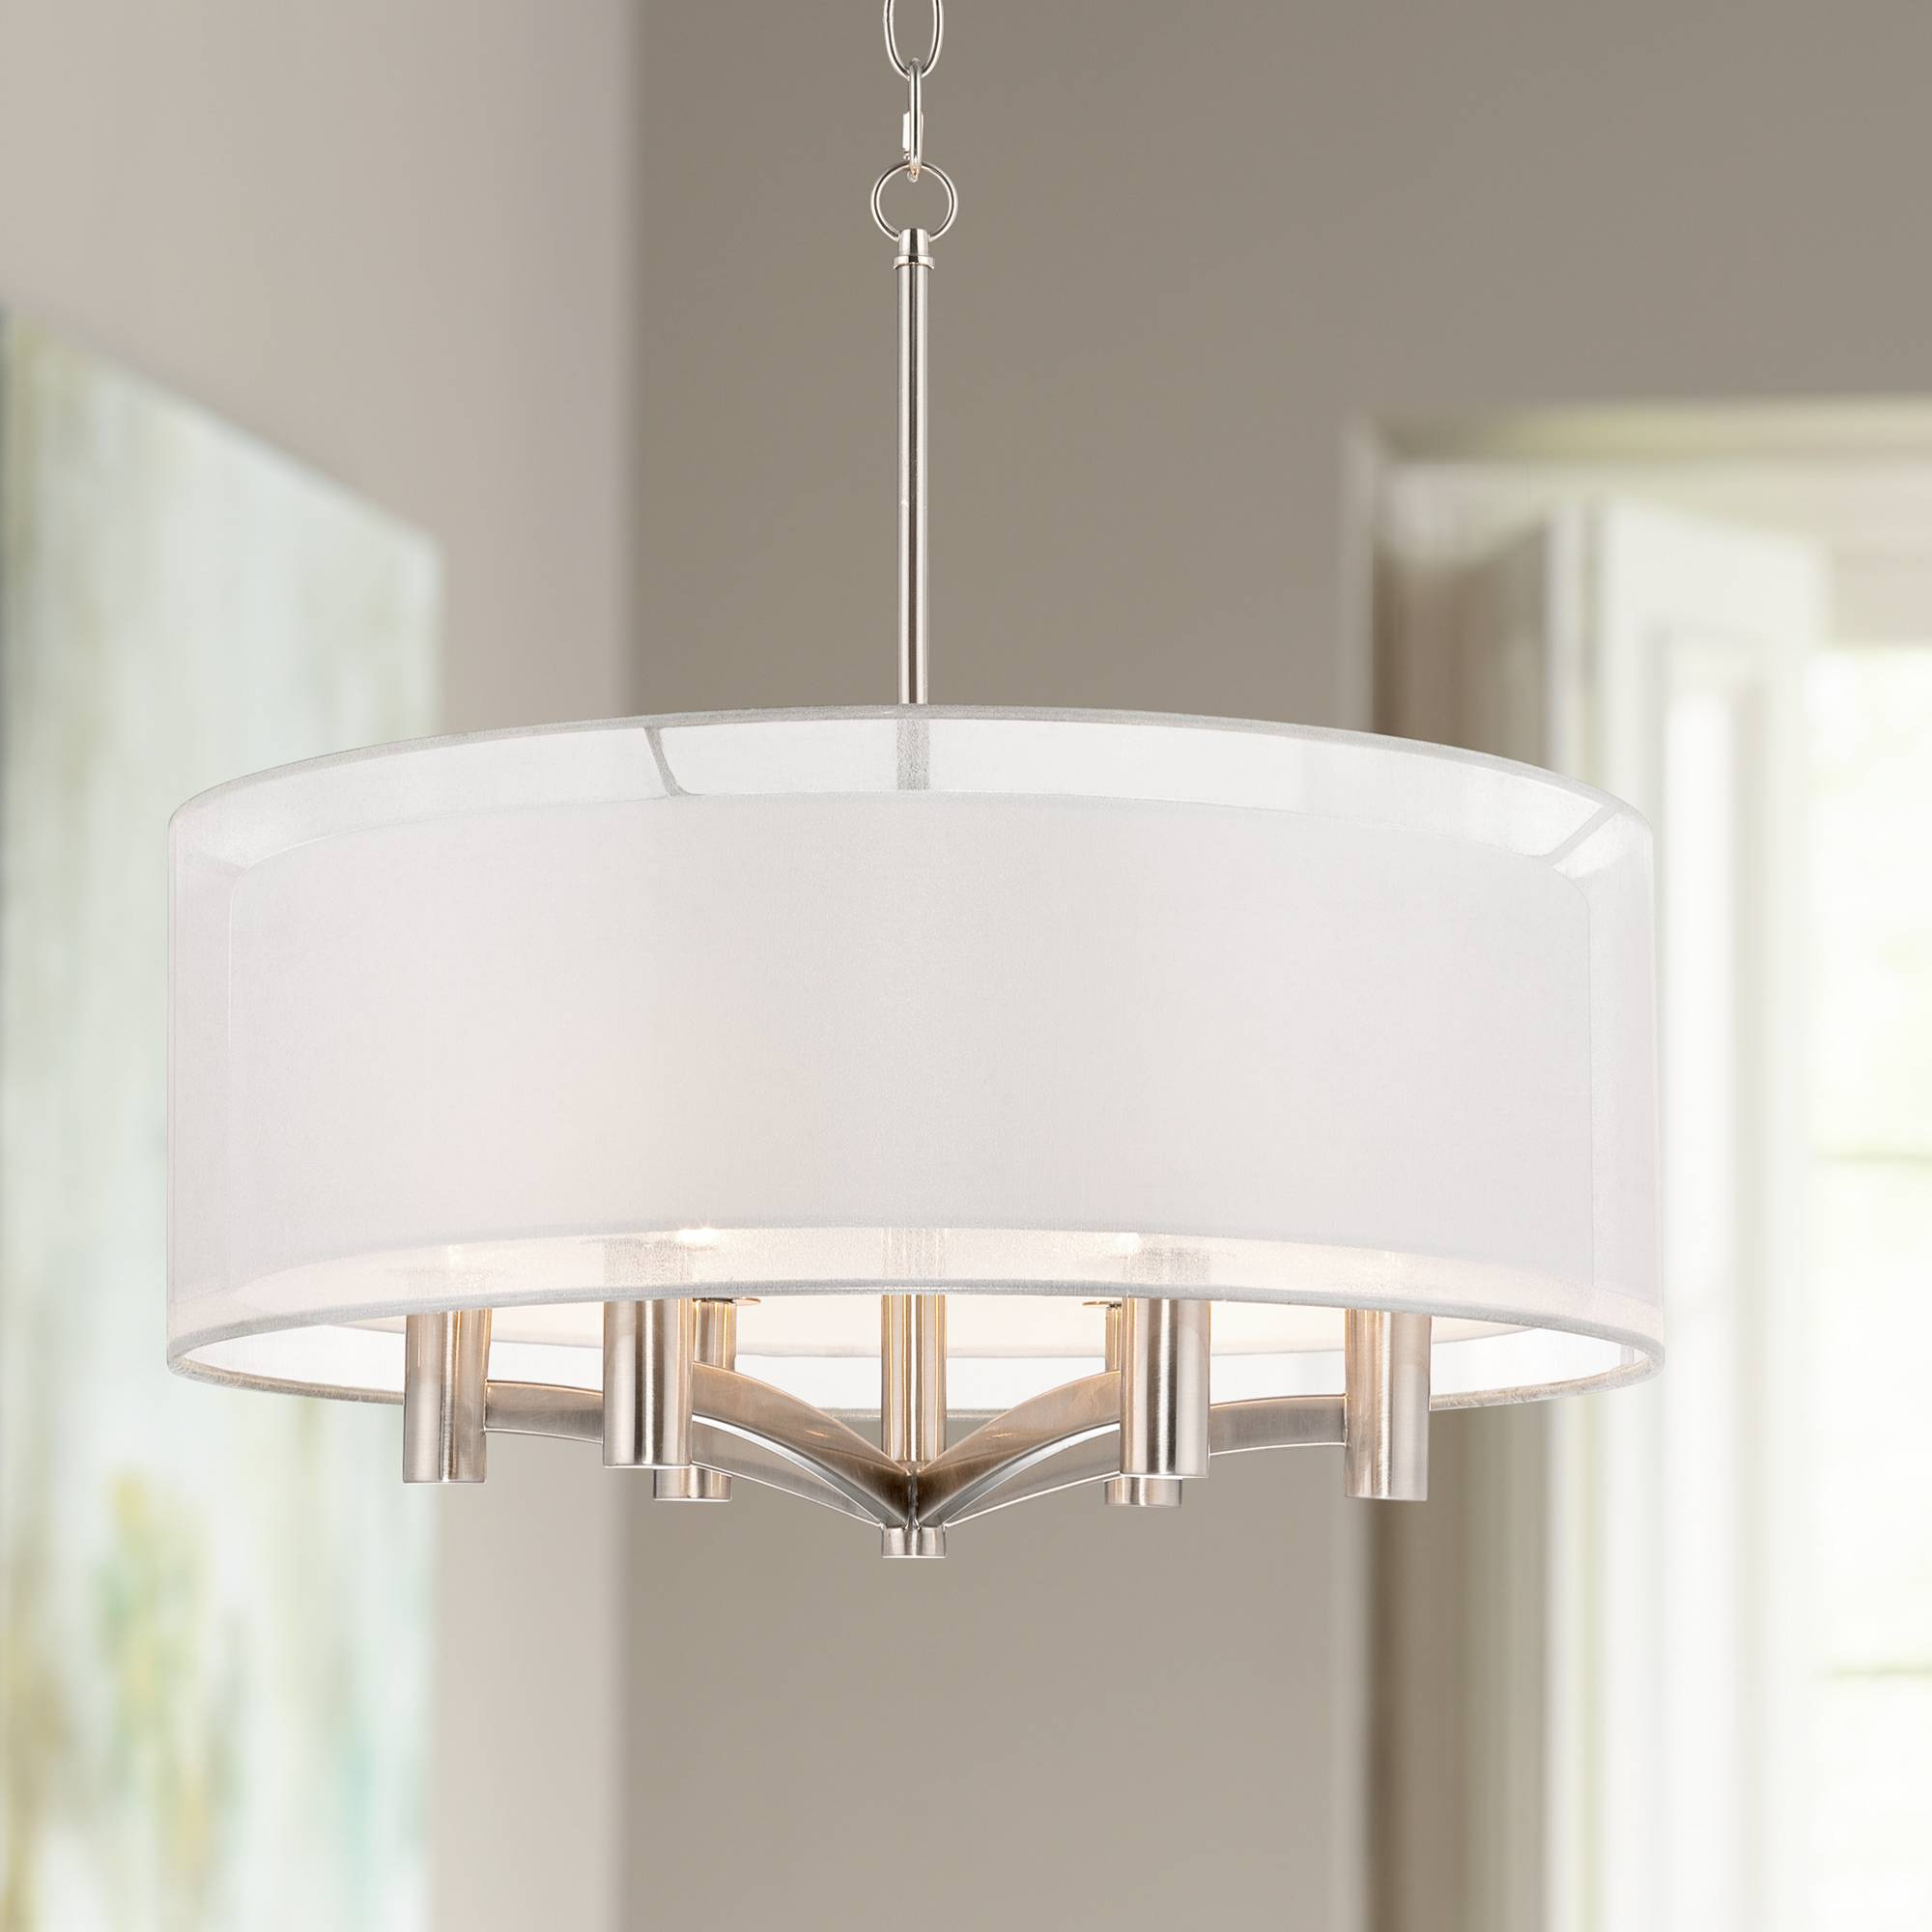 Caliari 6 light 22 wide brushed nickel pendant light